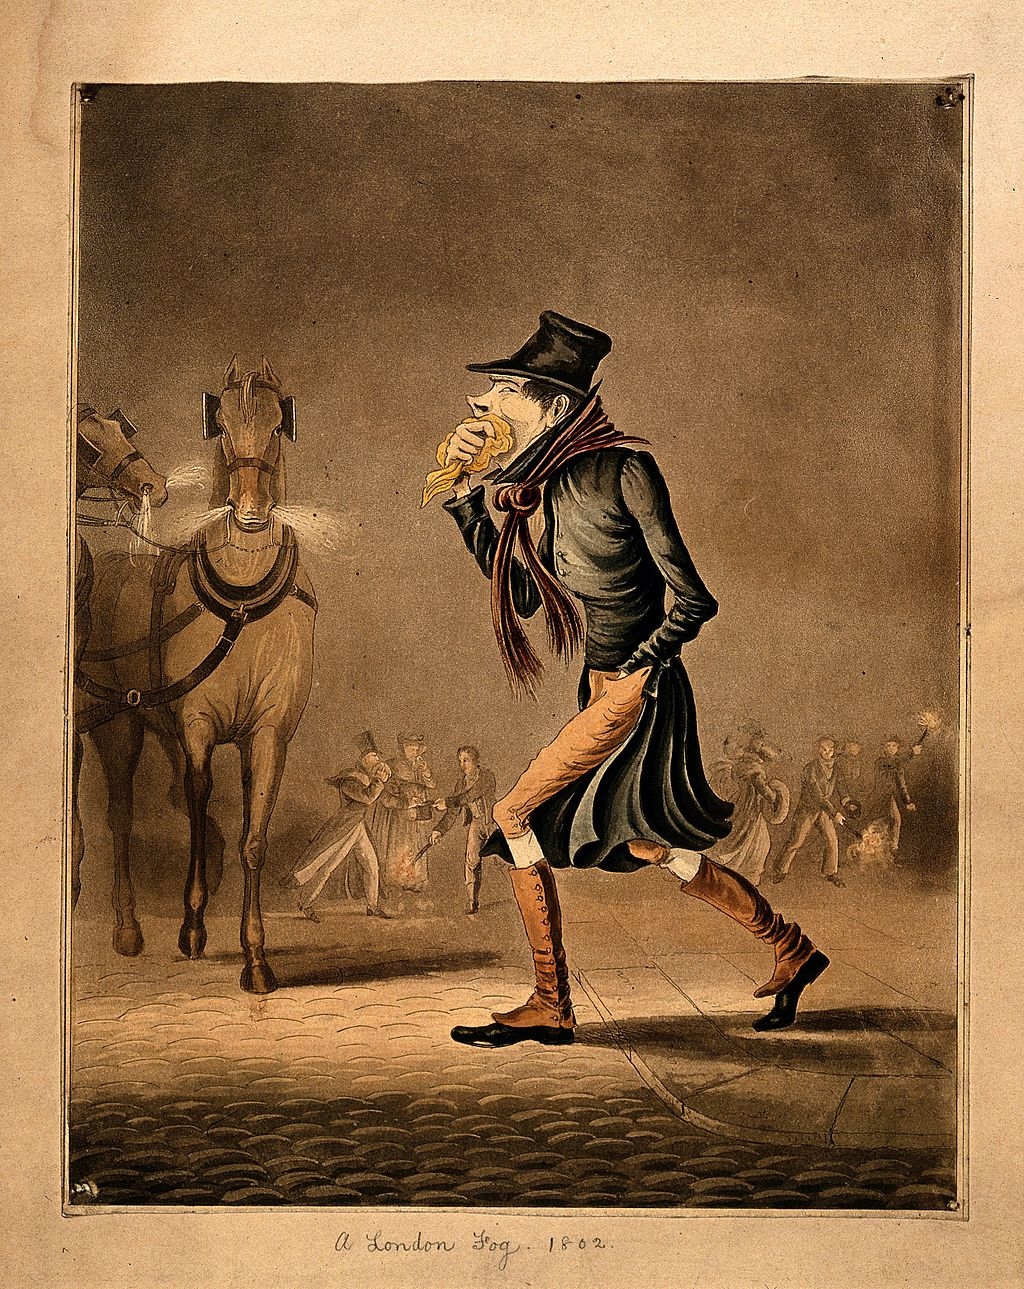 A man covering his mouth with a handkerchief, walking throug Wellcome V0010880